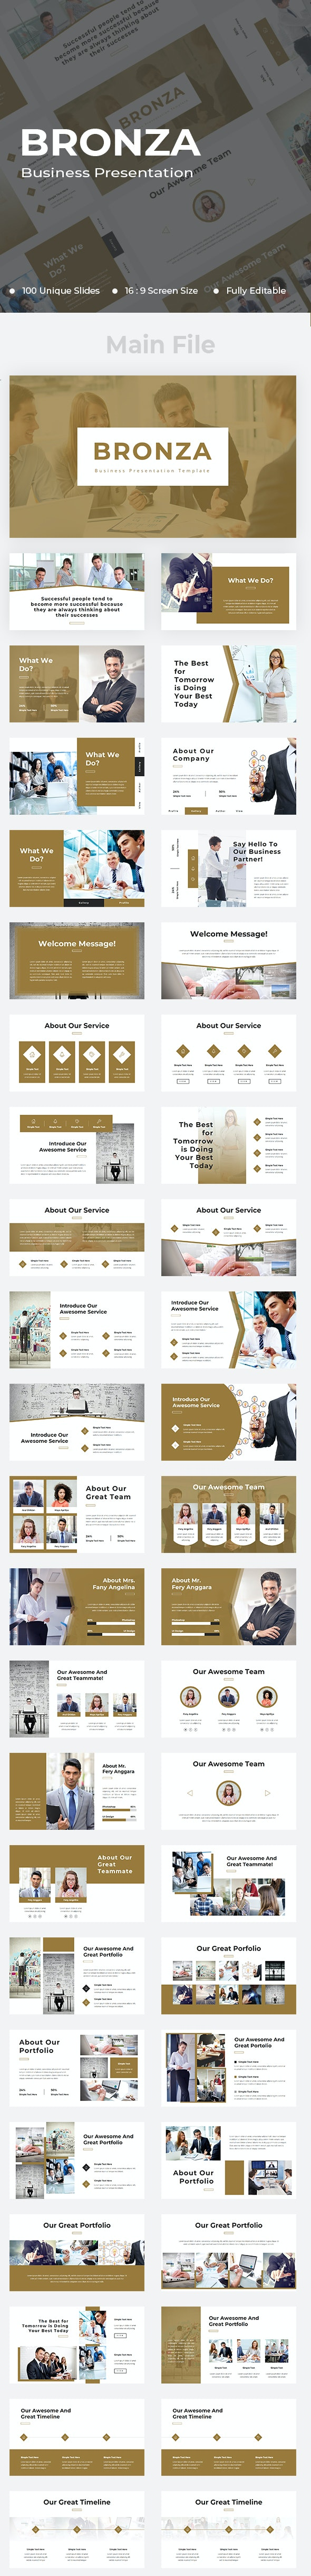 Bronza Business PowerPoint - Business PowerPoint Templates